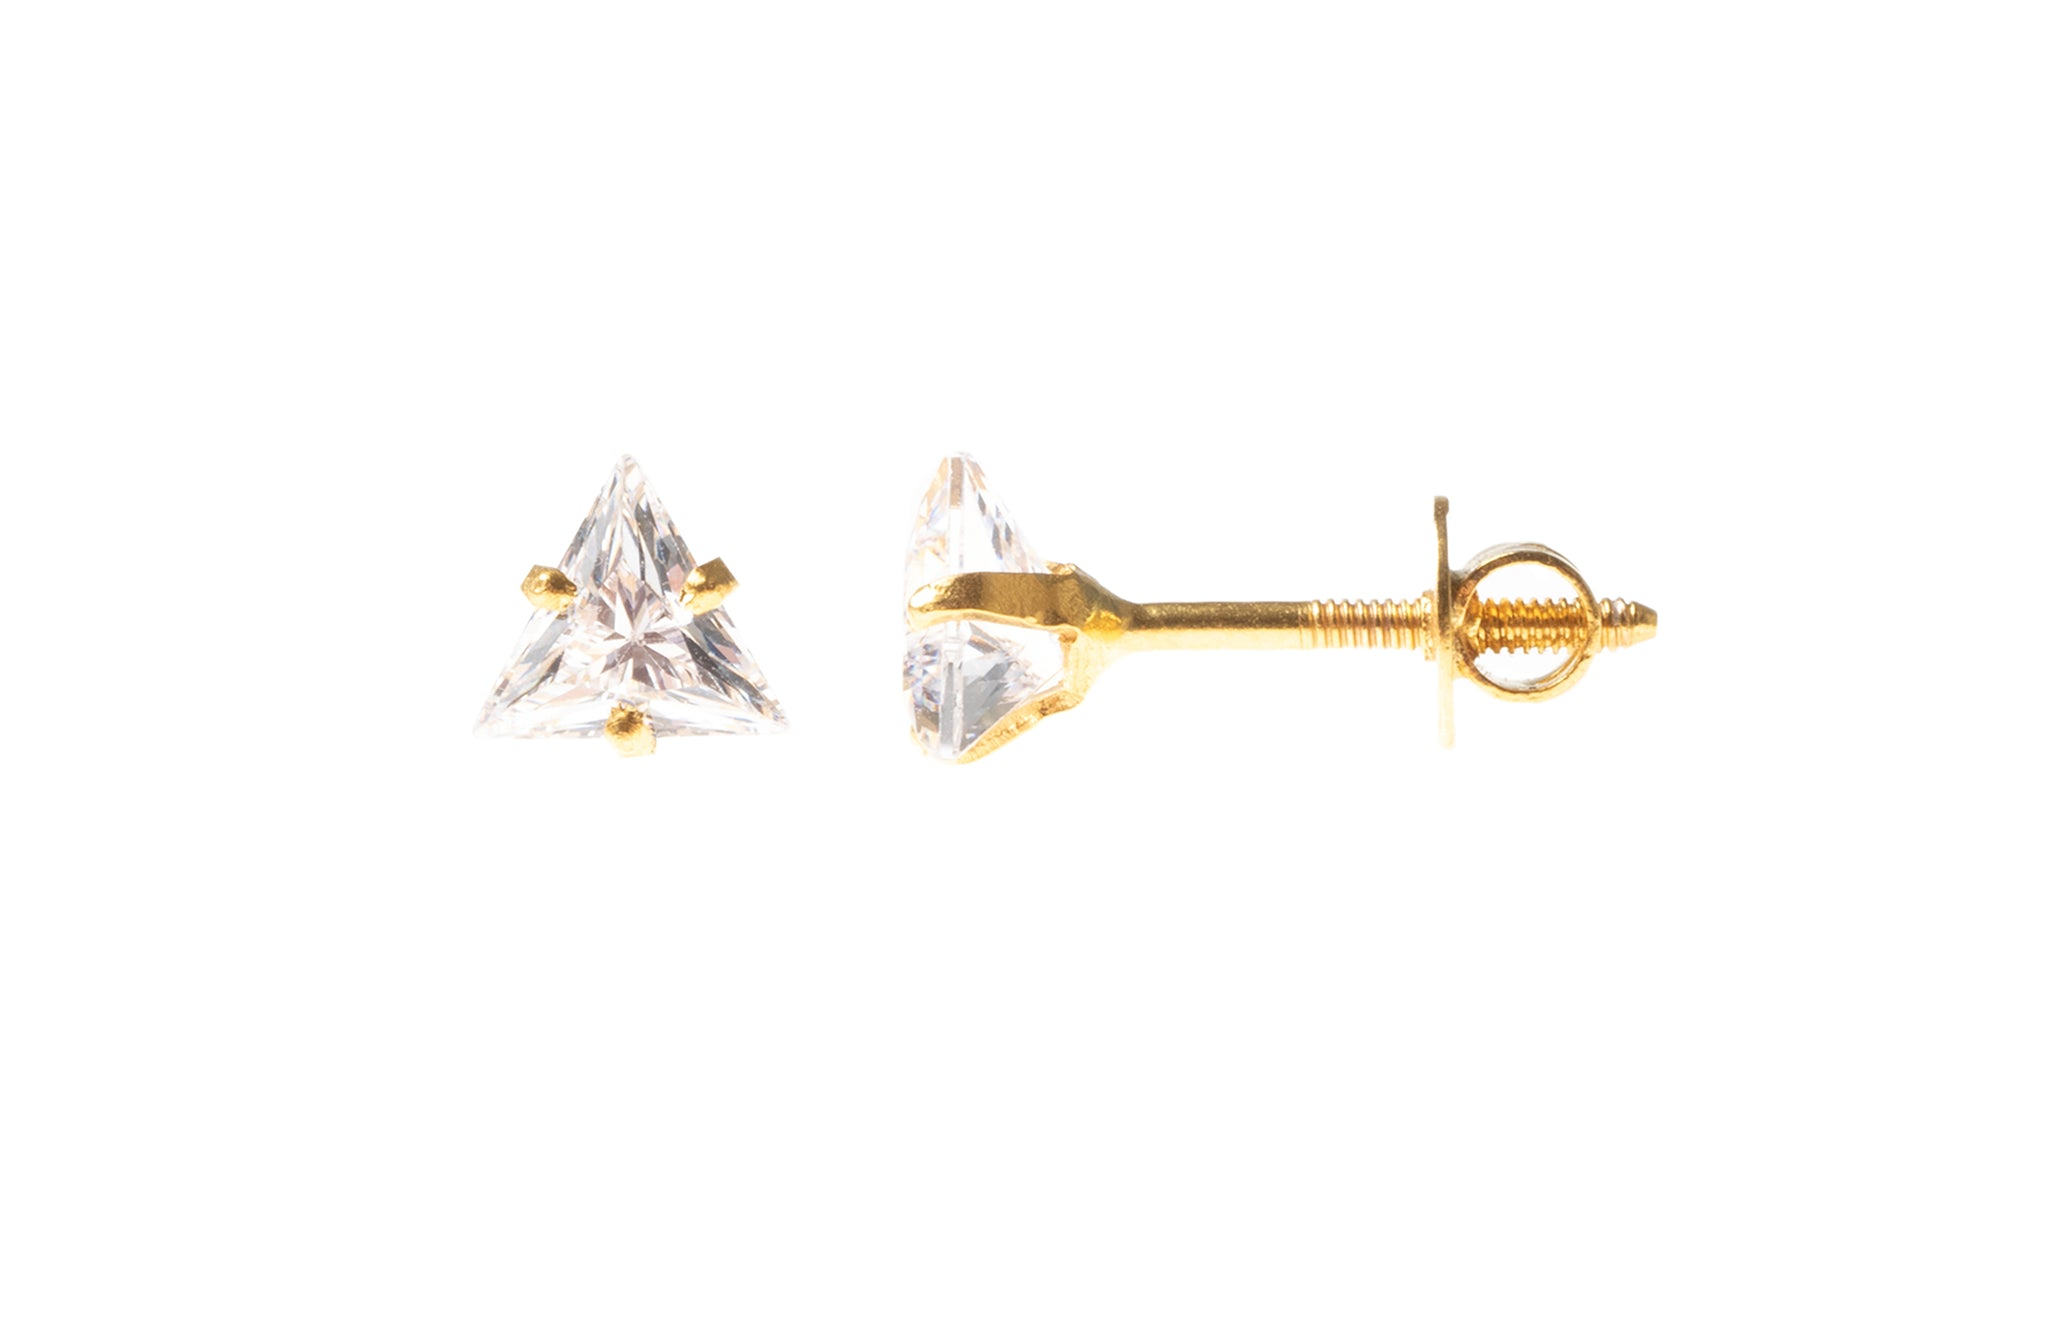 18ct Yellow Gold Ear Studs set with a Triangle Shaped Cubic Zirconia (0.8g) E-7848